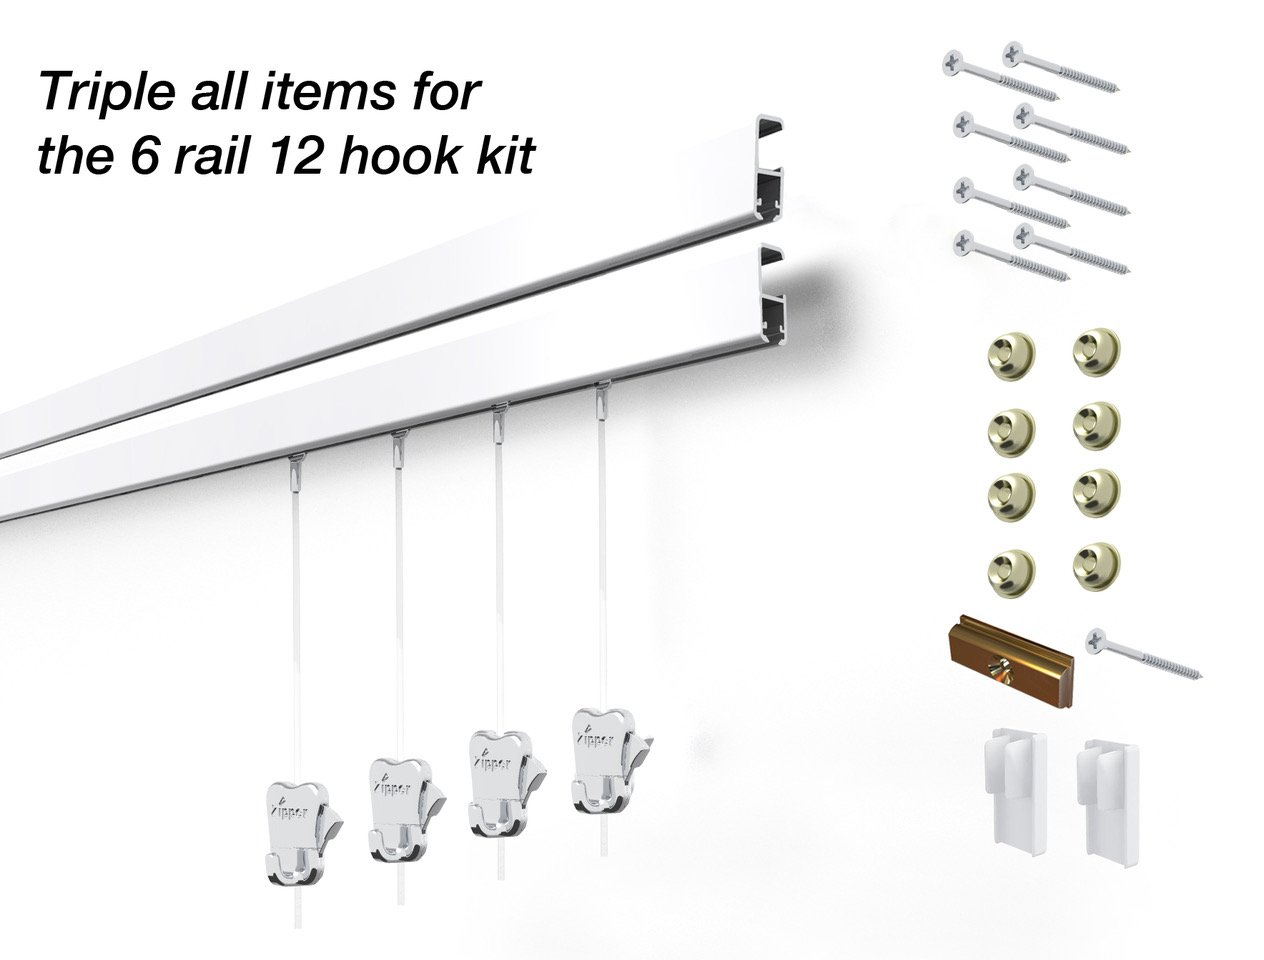 12 Hanging Components STAS Cliprail Pro Picture Hanging System Kit- Heavy Duty Track and Art Hanging Gallery Kit for Home, Office or Public Space (6 rails 12 hooks and cords, white rails)